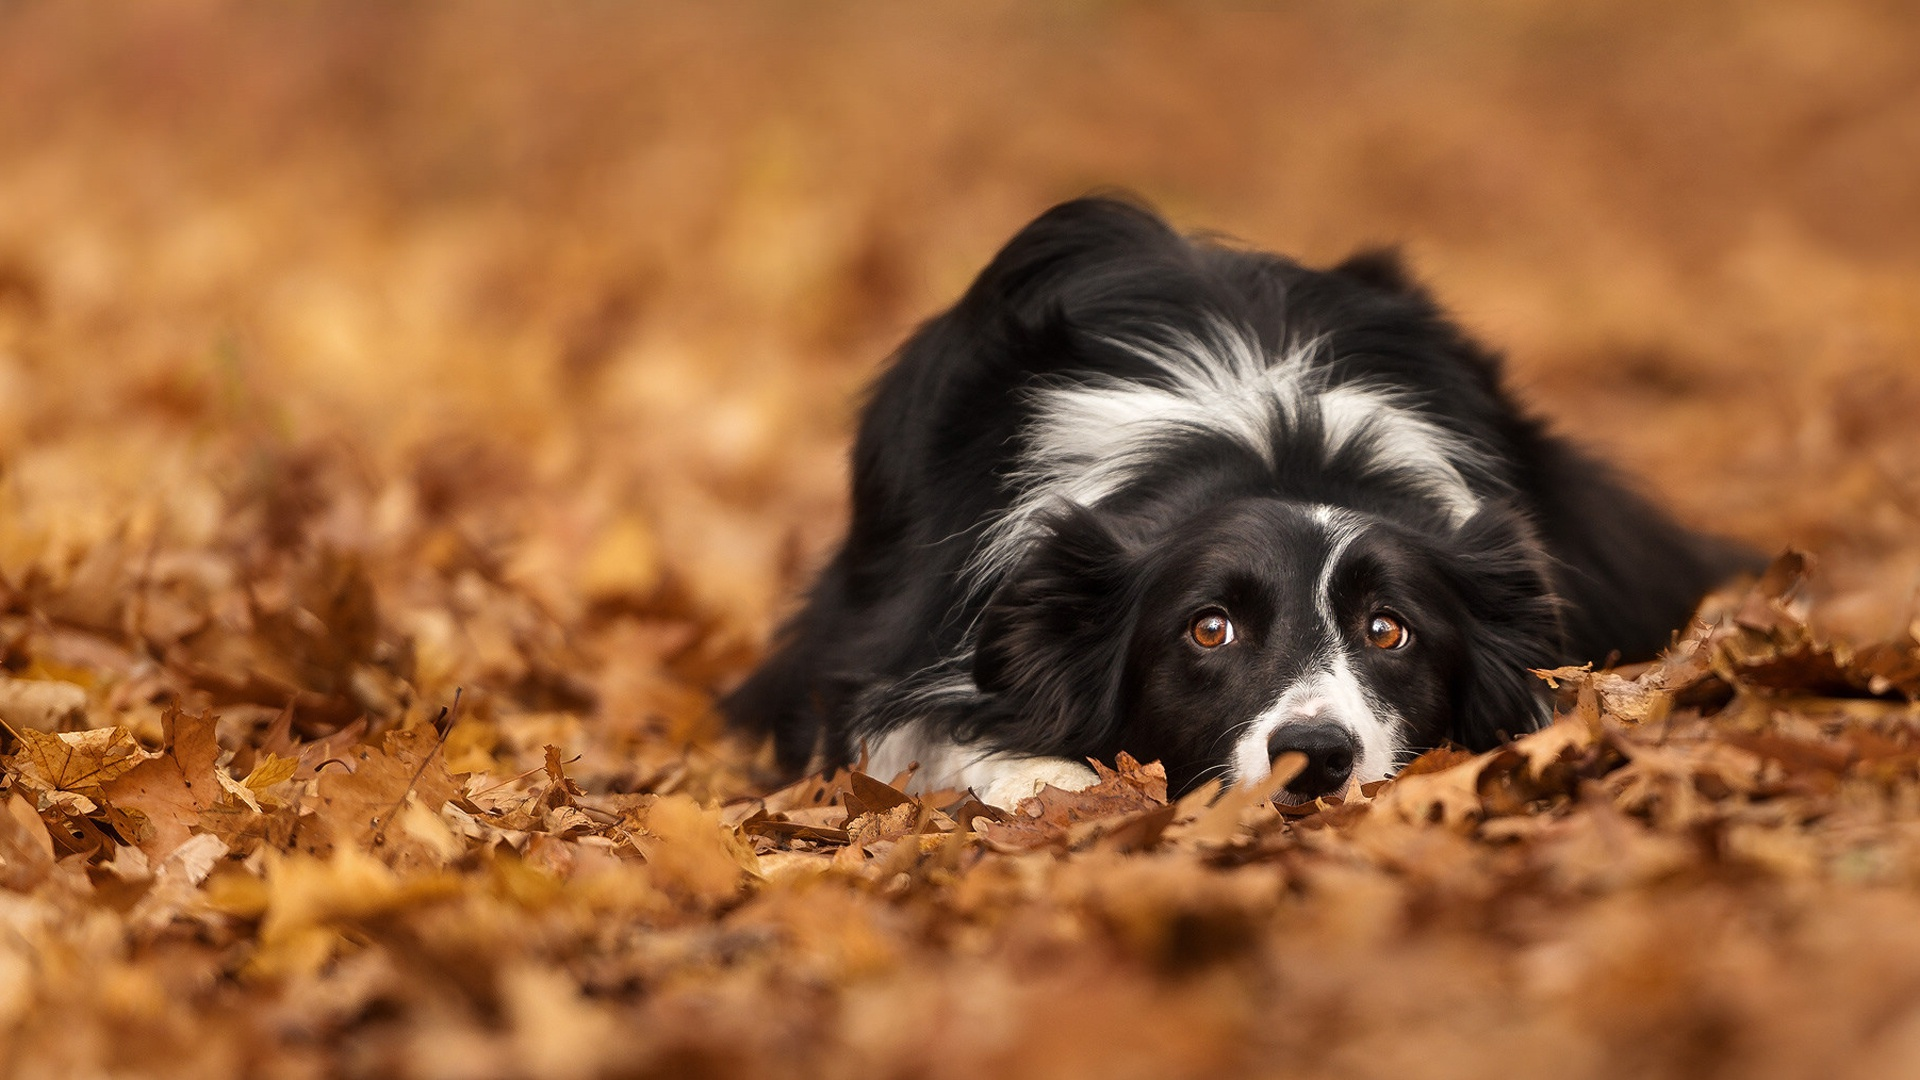 Cute Fall Wallpaper Iphone 5 Border Collie Full Hd Wallpaper And Hintergrund